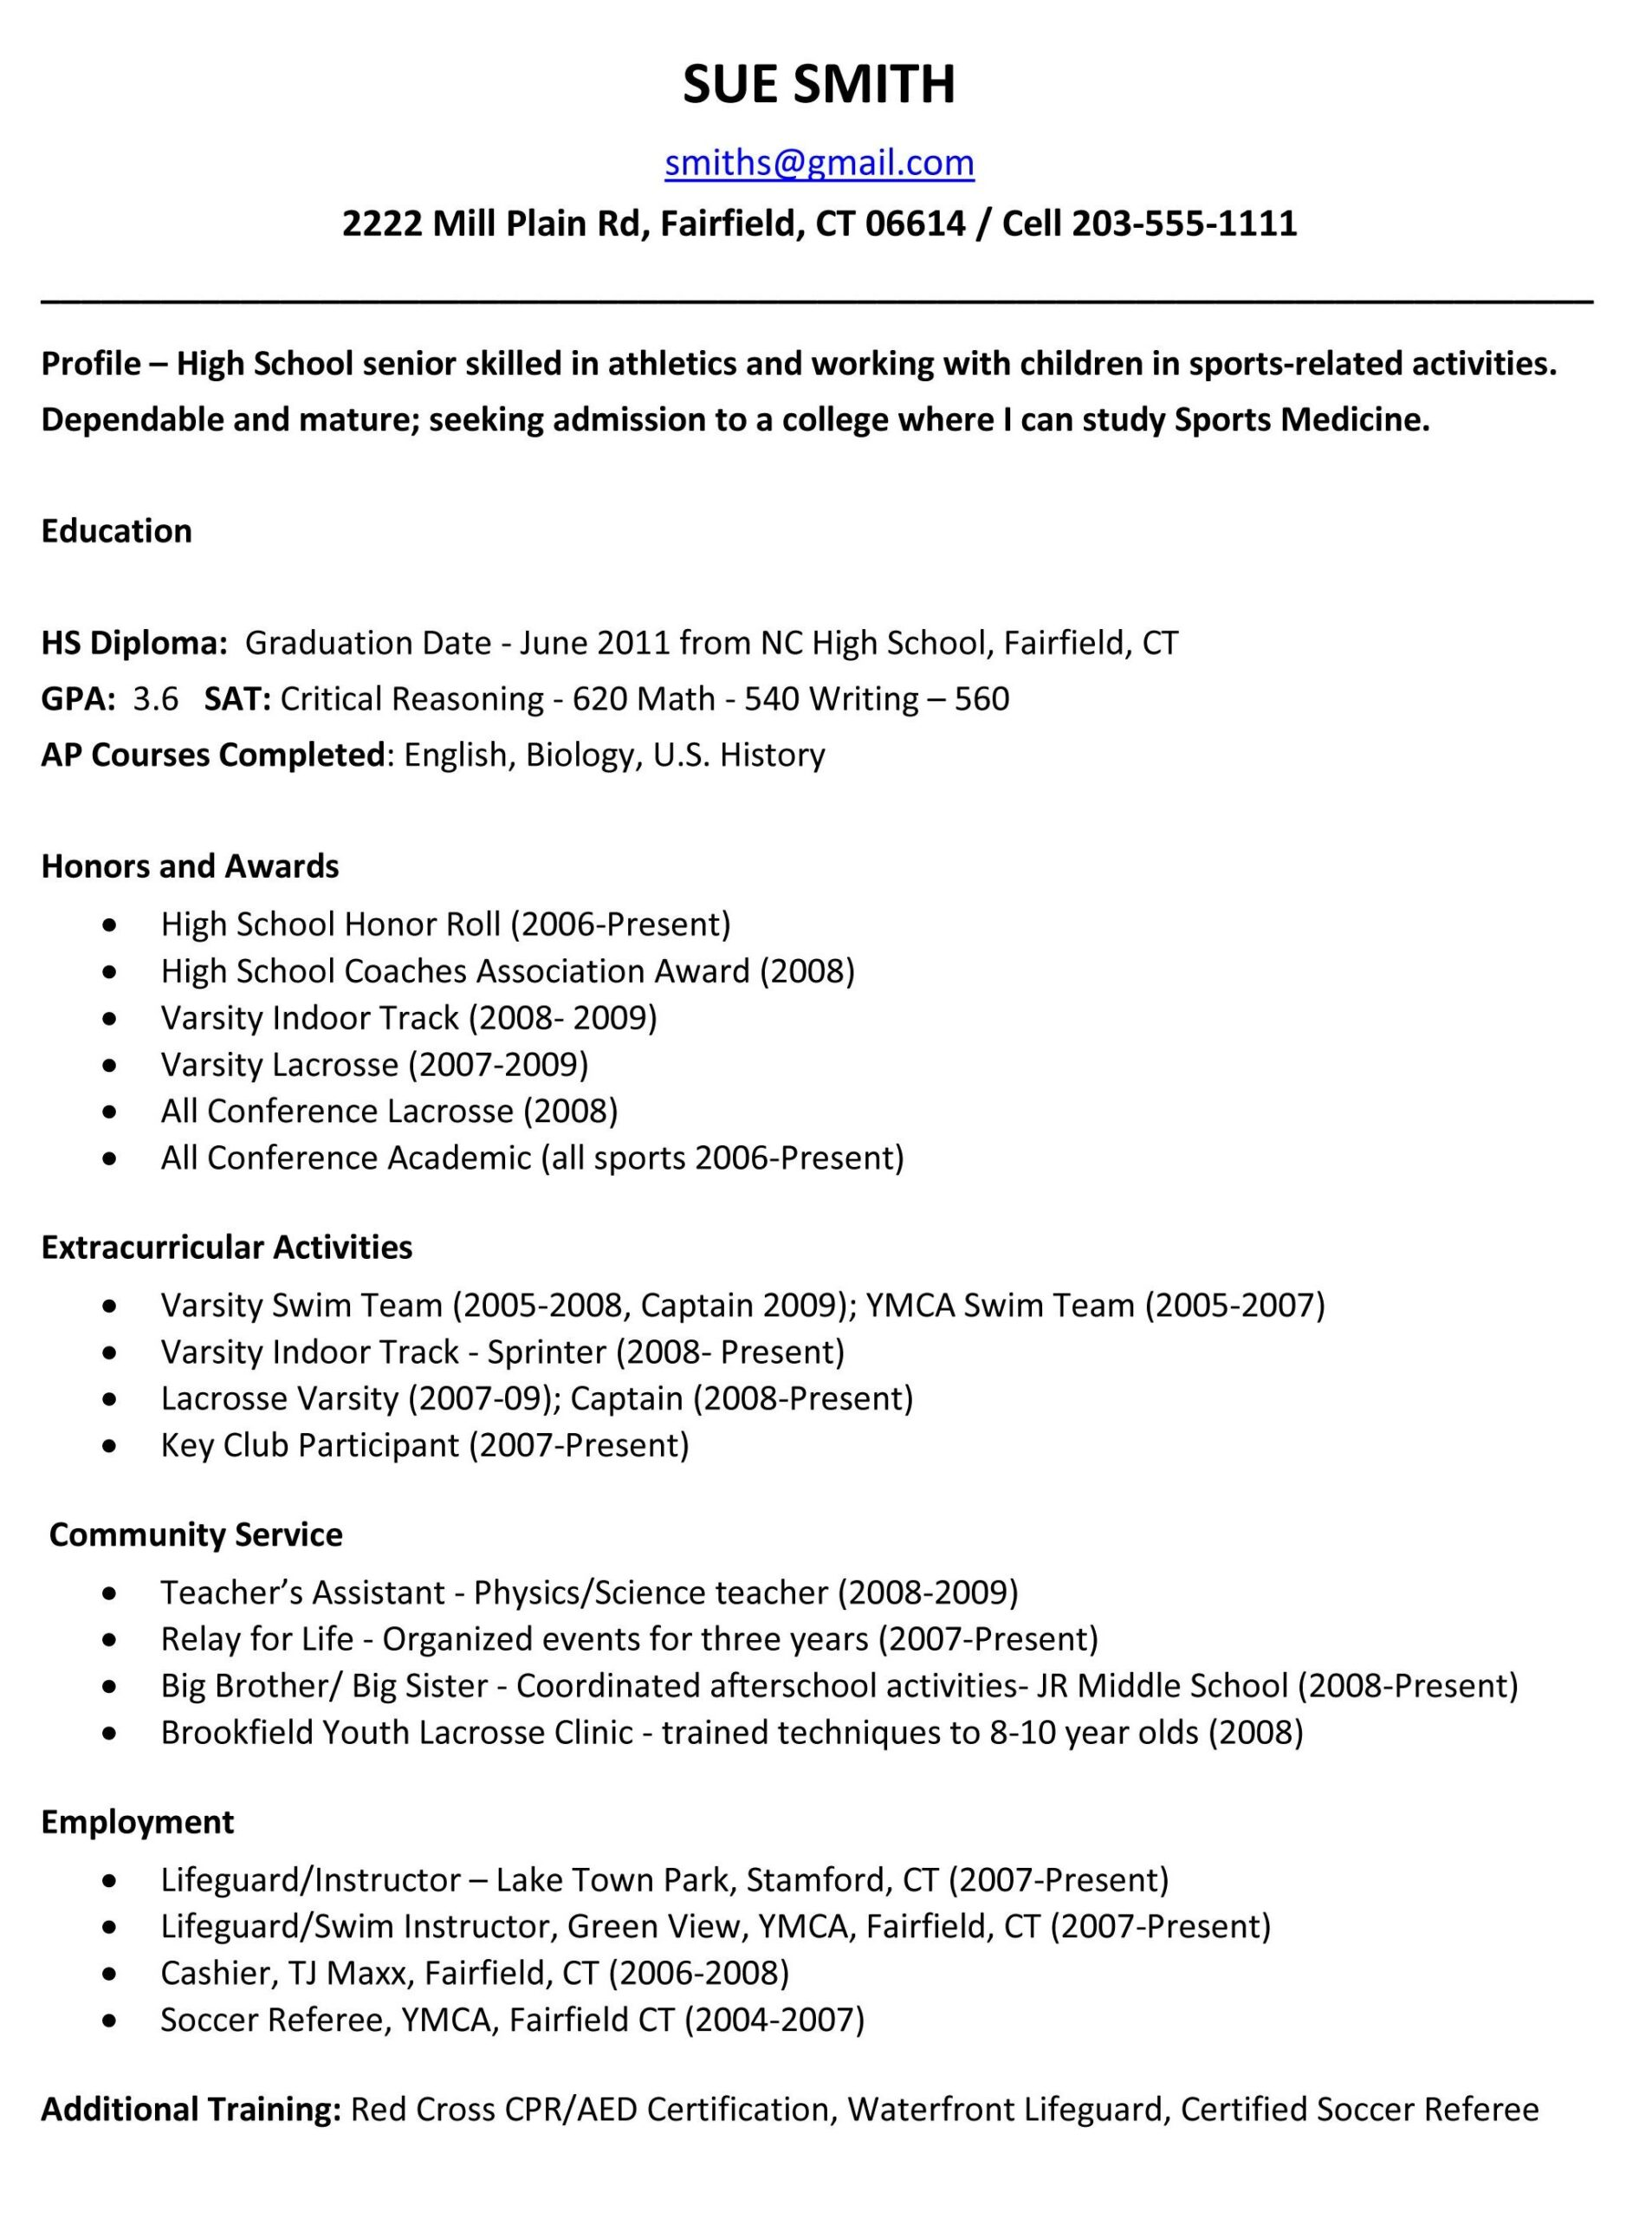 sample resumes high school resume template college application putting together great Resume Putting Together A Great High School Resume